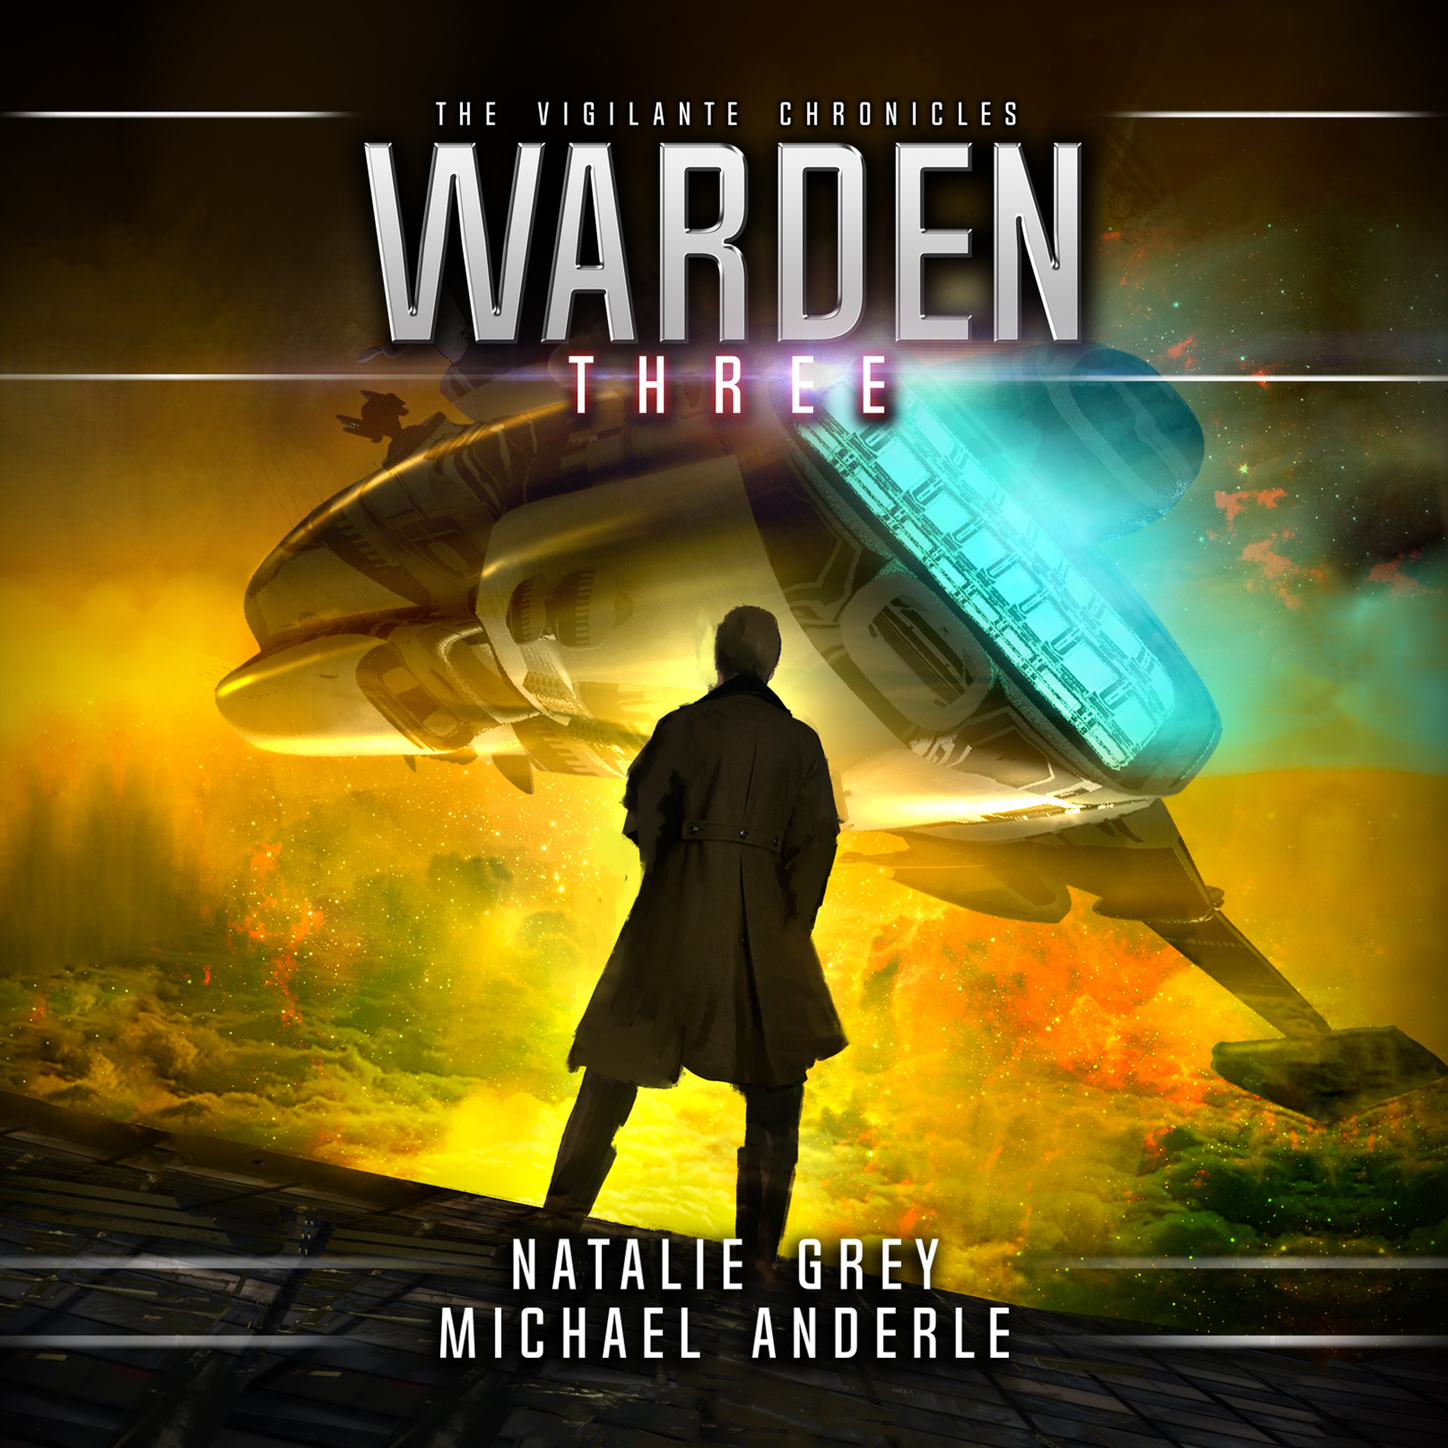 Michael Anderle Warden - The Vigilante Chronicles, Book 3 (Unabridged) цена 2017